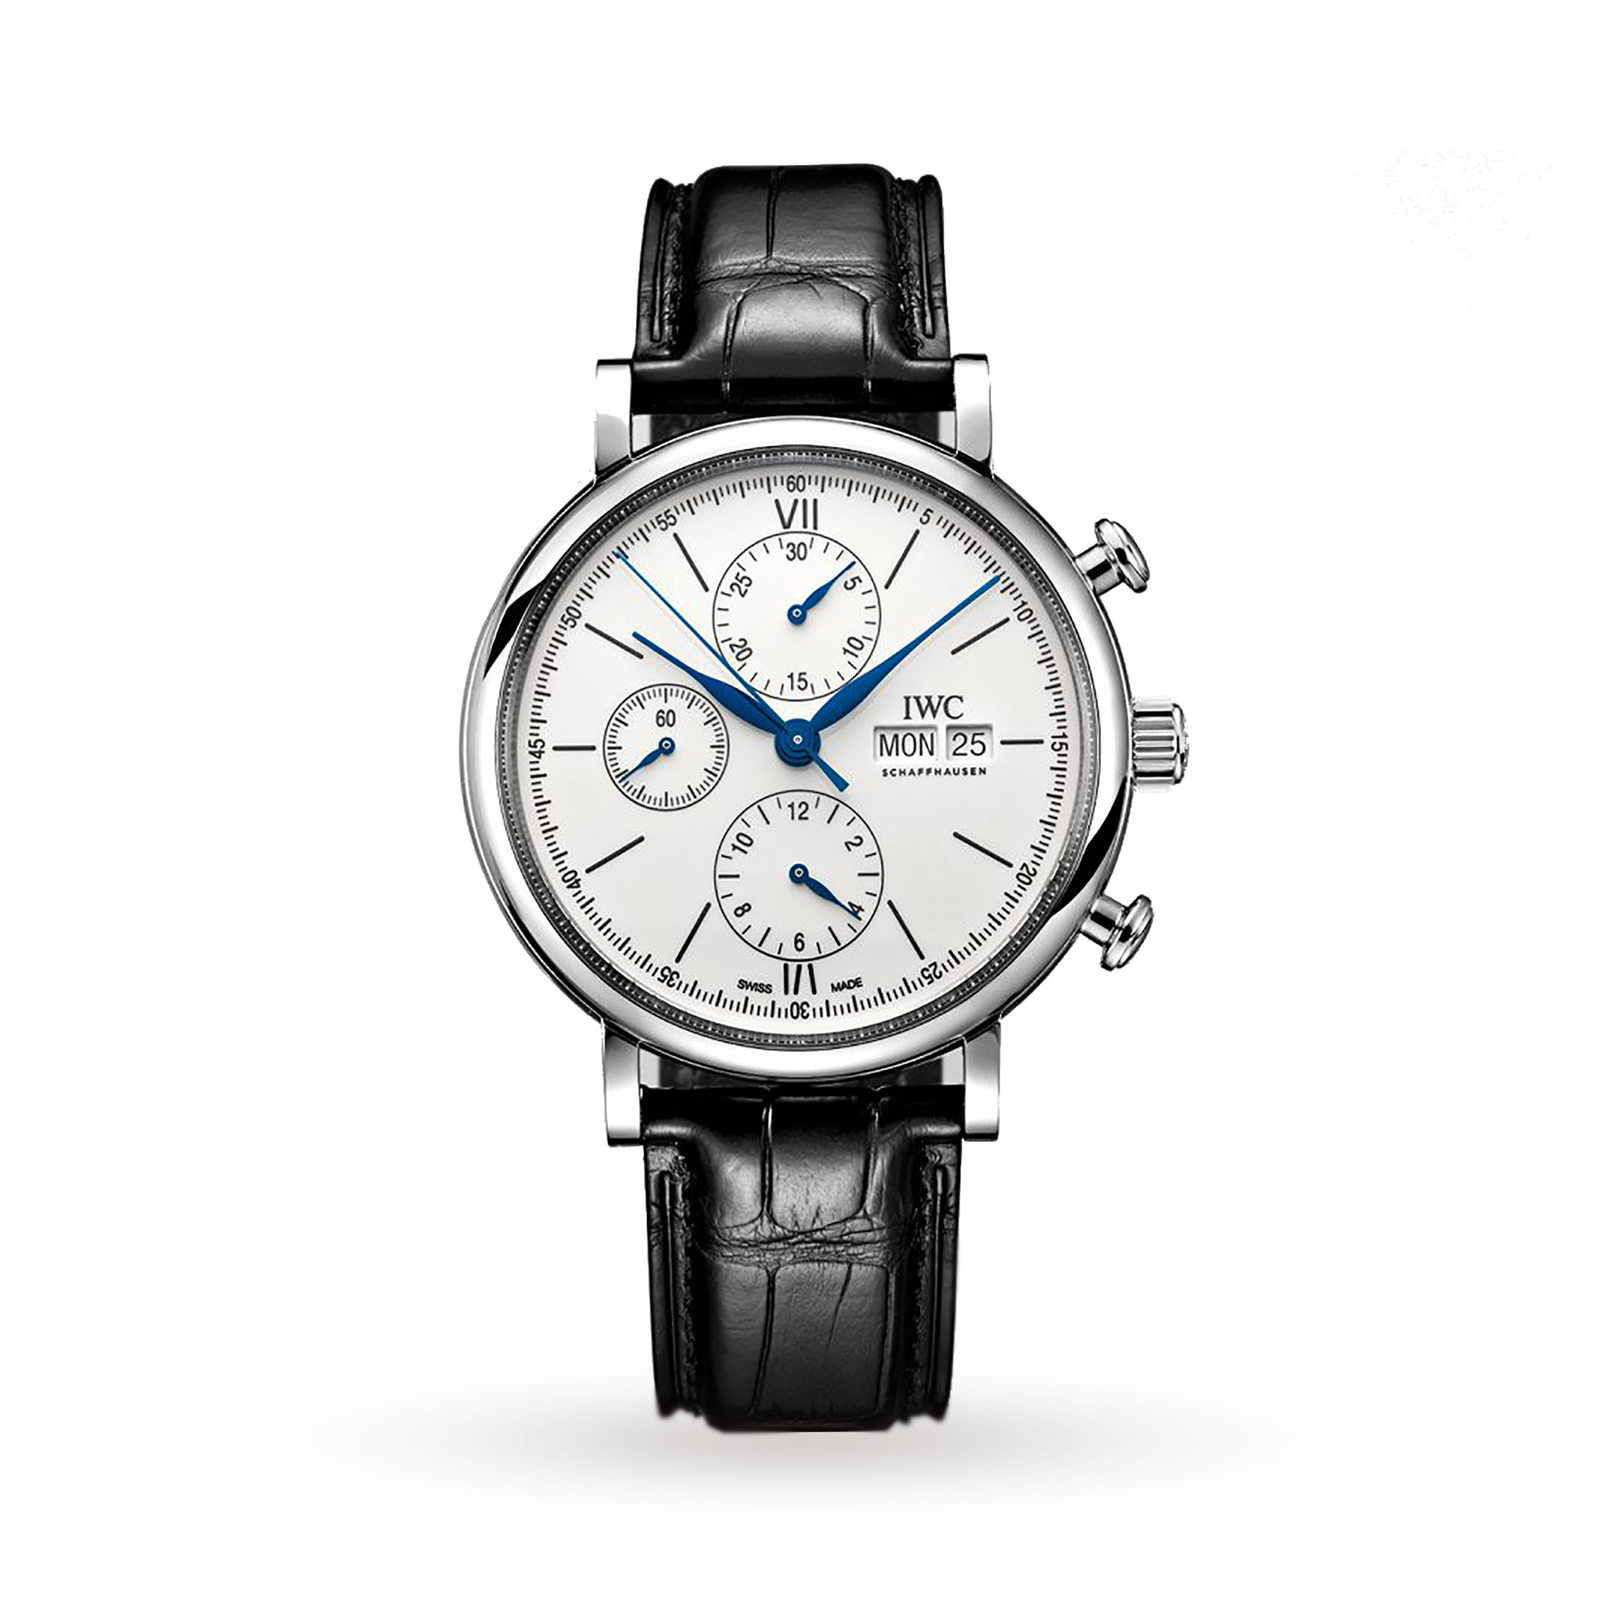 IWC Portofino Chronograph Edition 150 Years